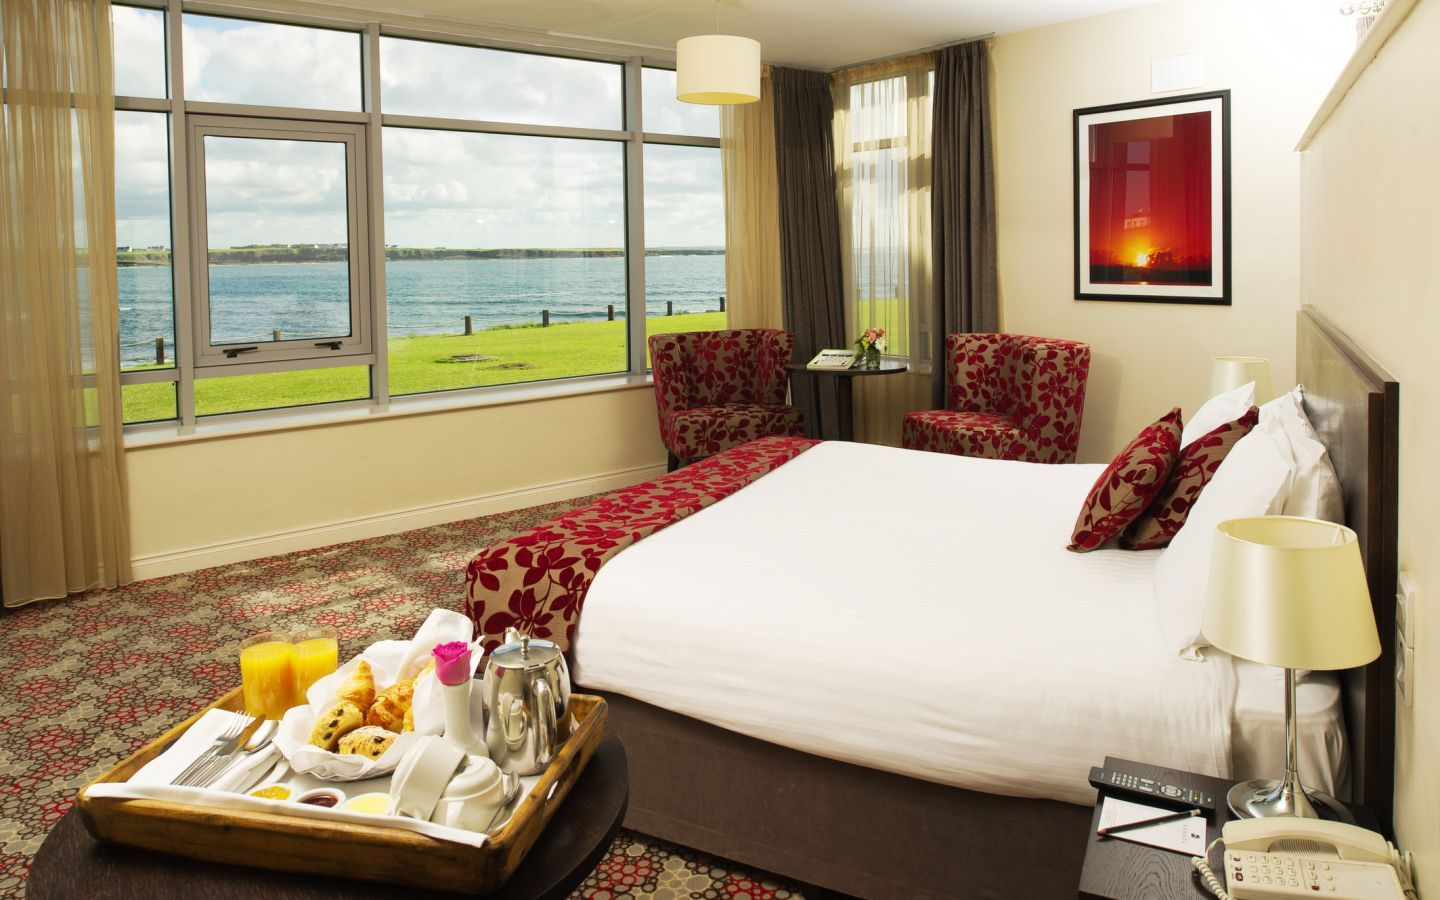 Hotels County Clare Ireland Accommodation In Clare Superior Room Miami Beach Hotels Beach Hotels